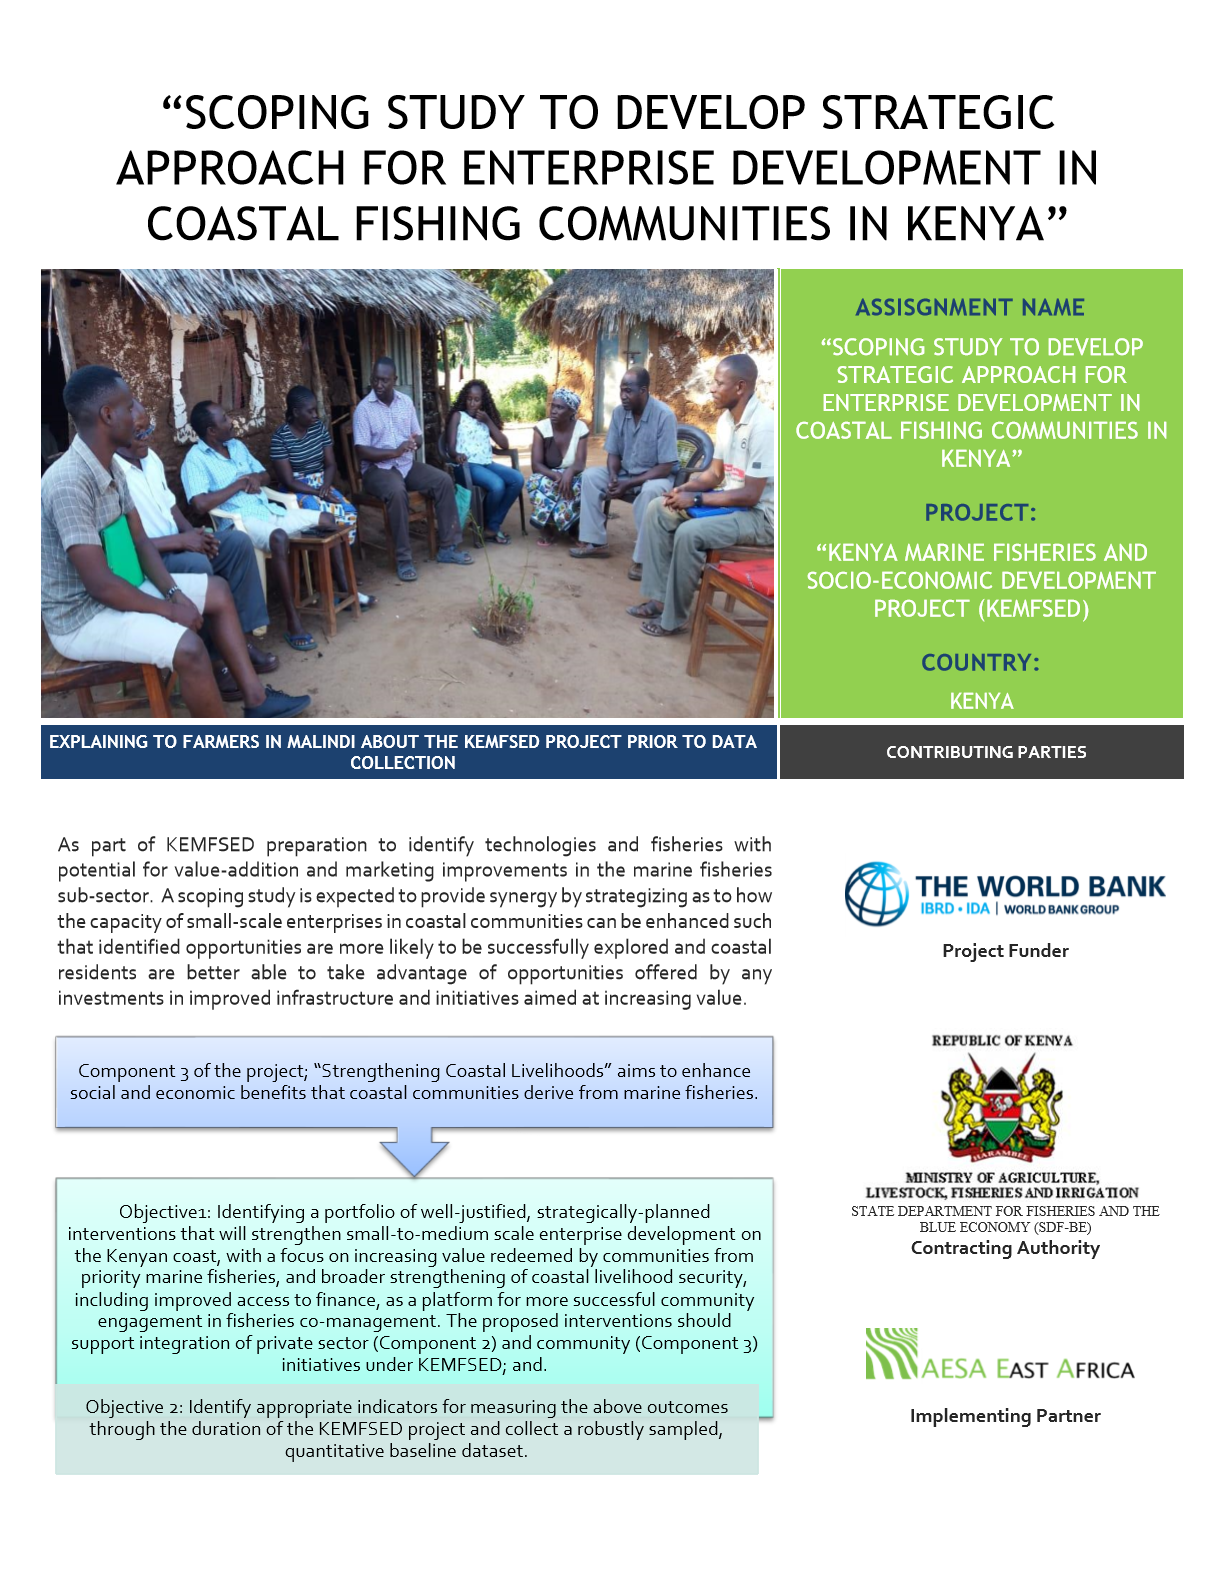 Ongoing Data Collection in the Coastal Region of Kenya